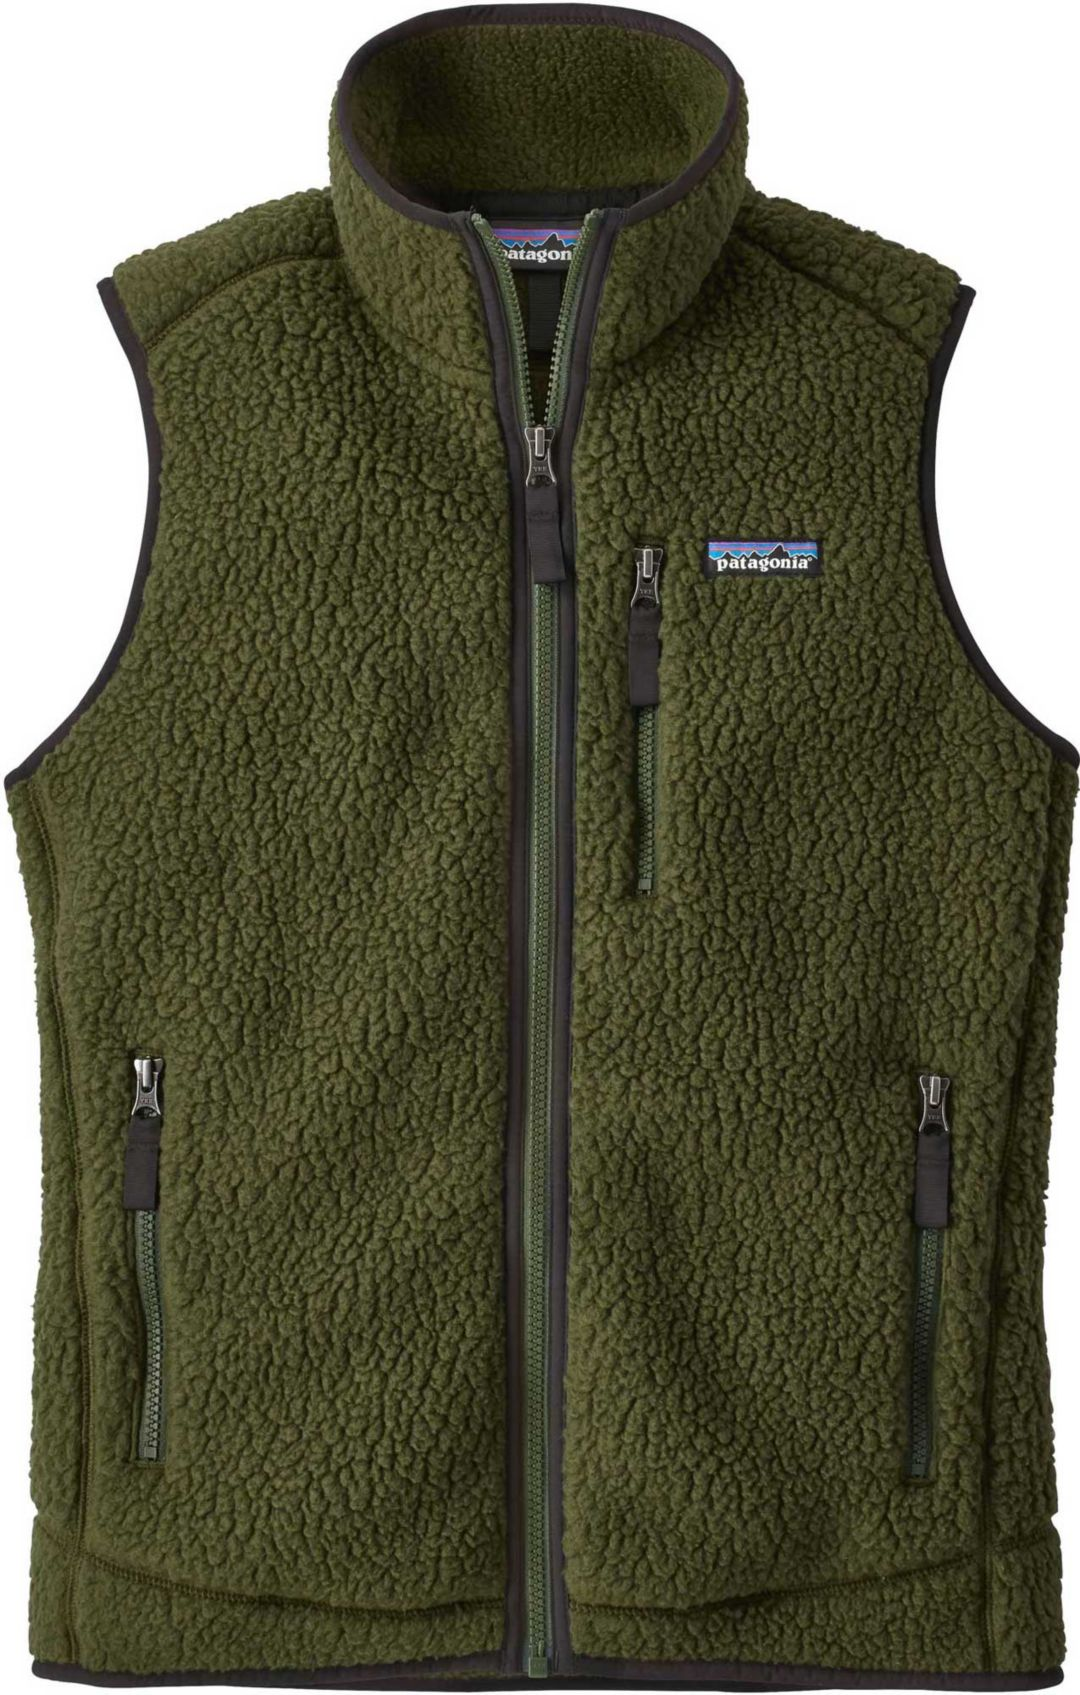 Pile Patagonia Fleece Vest Retro Women's nwZ8OX0kNP